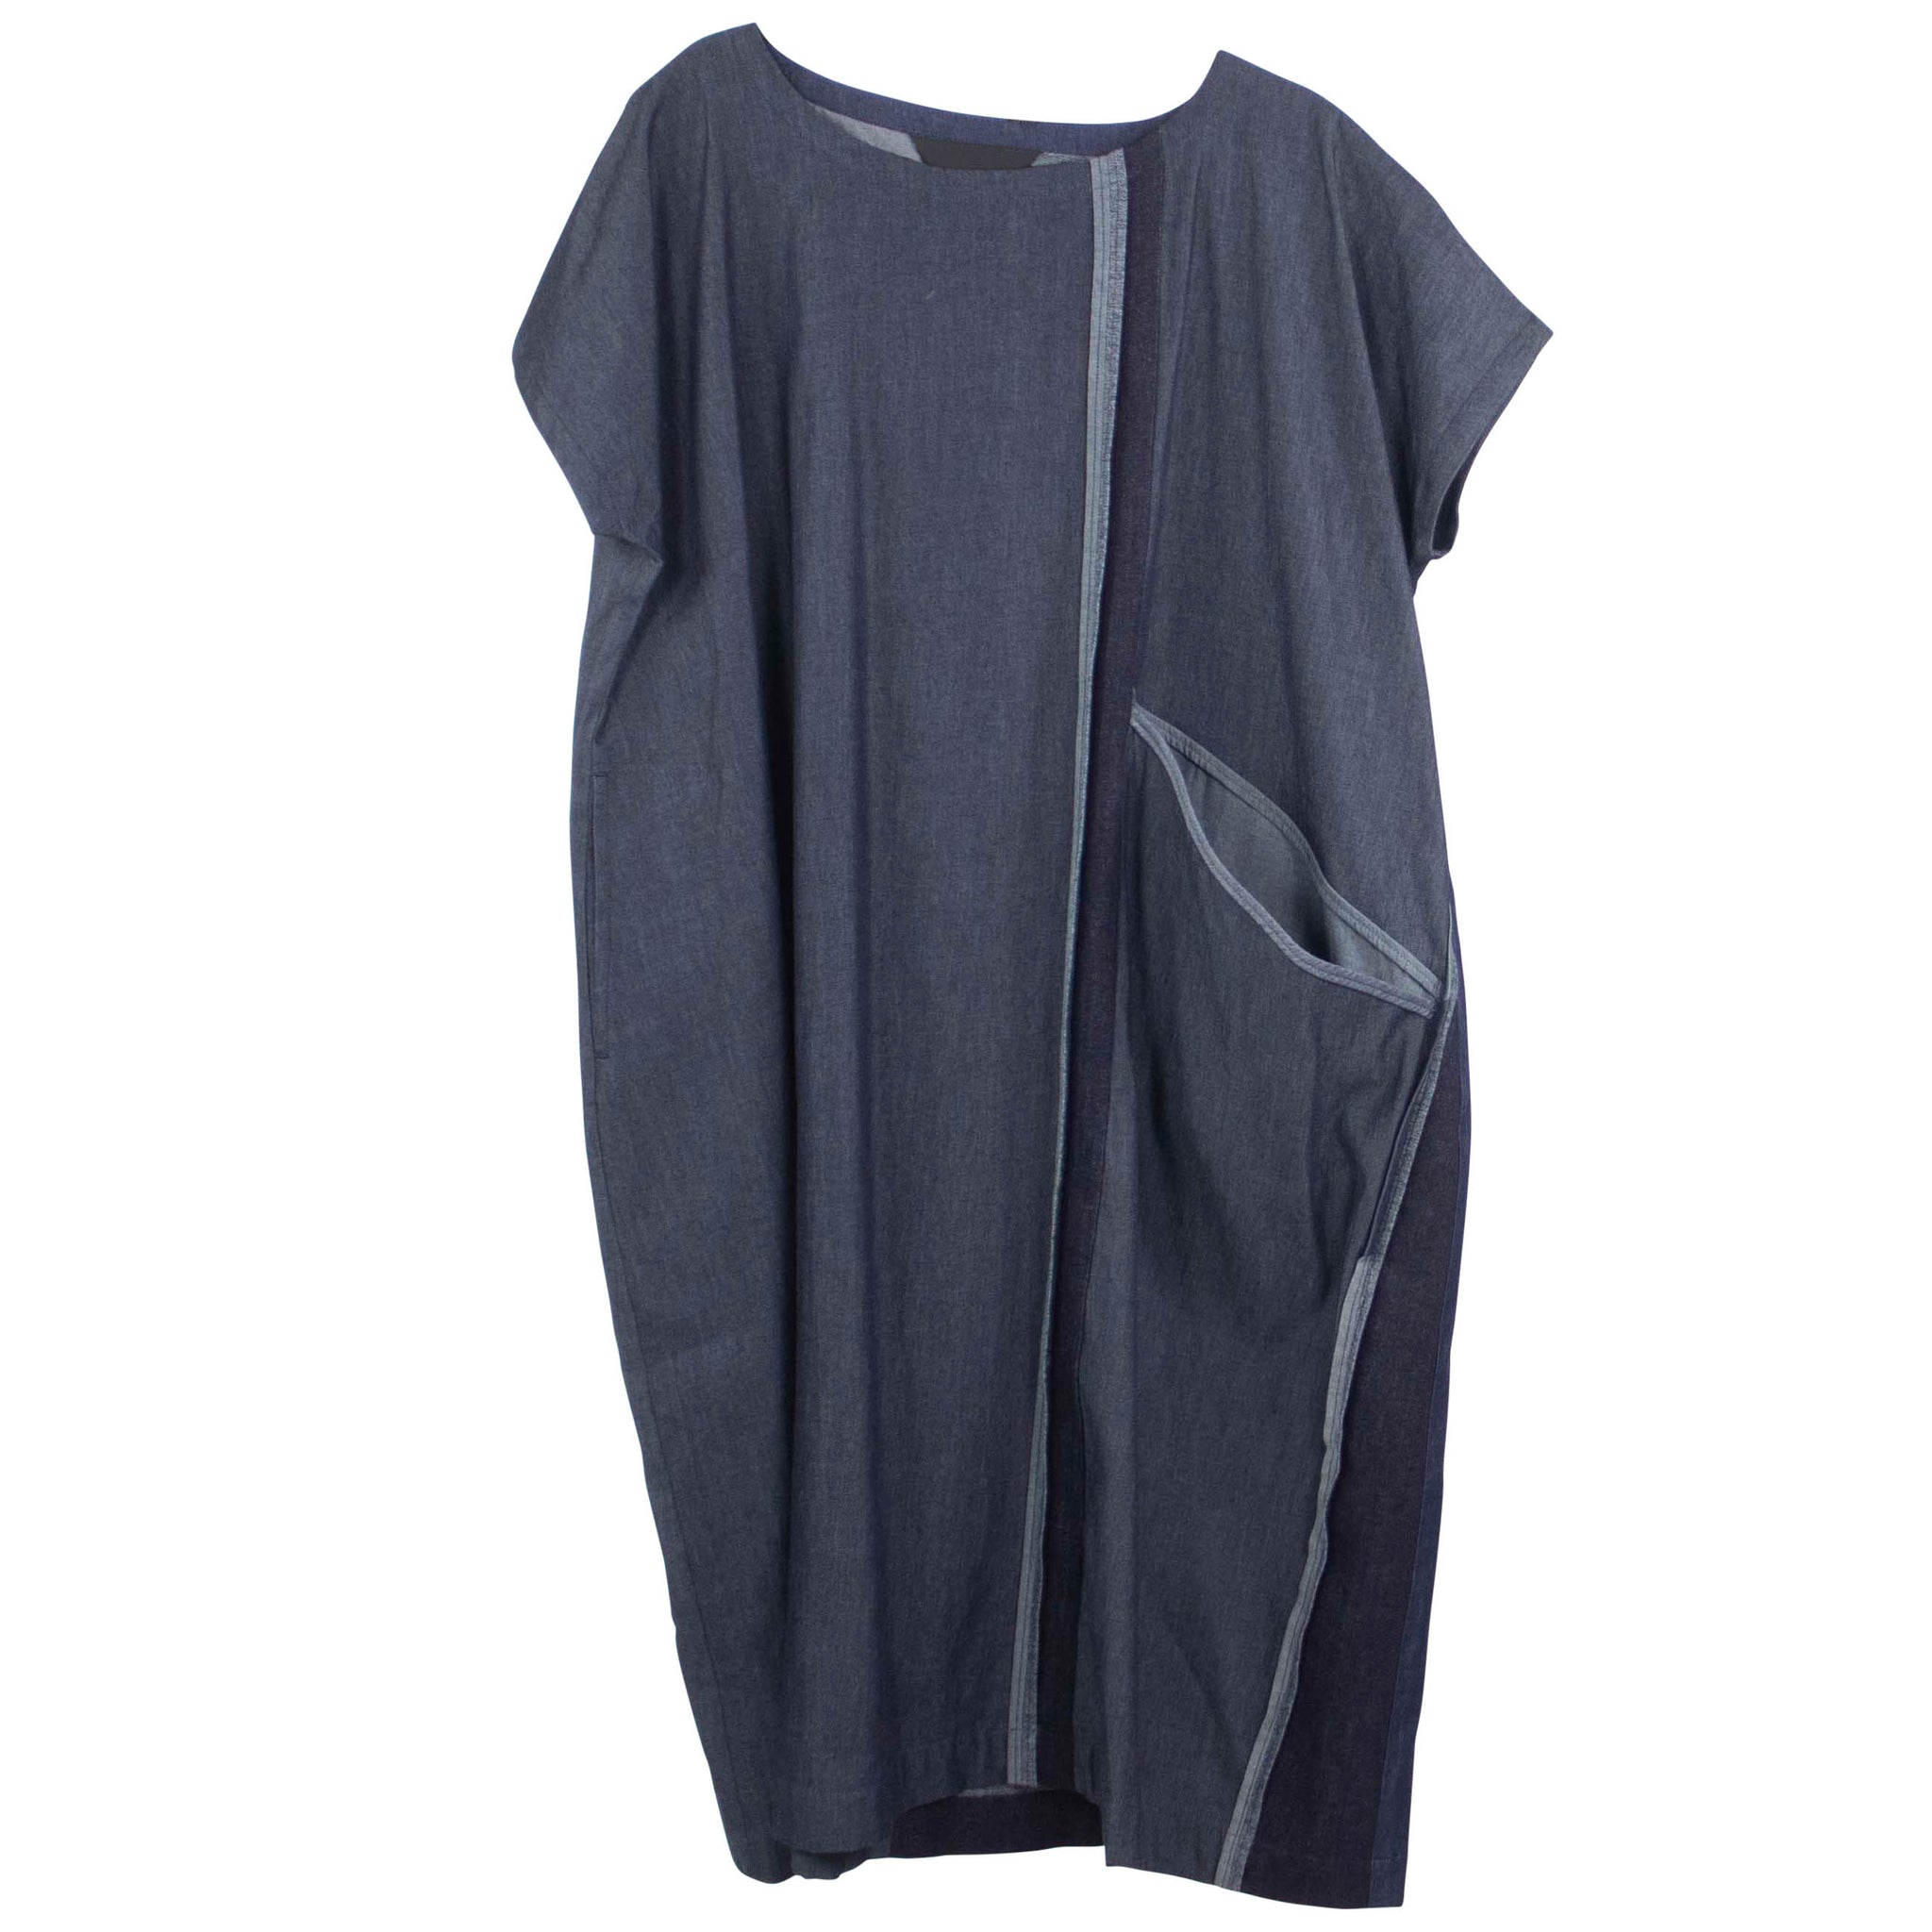 Moyuru Indigo Denim Dress